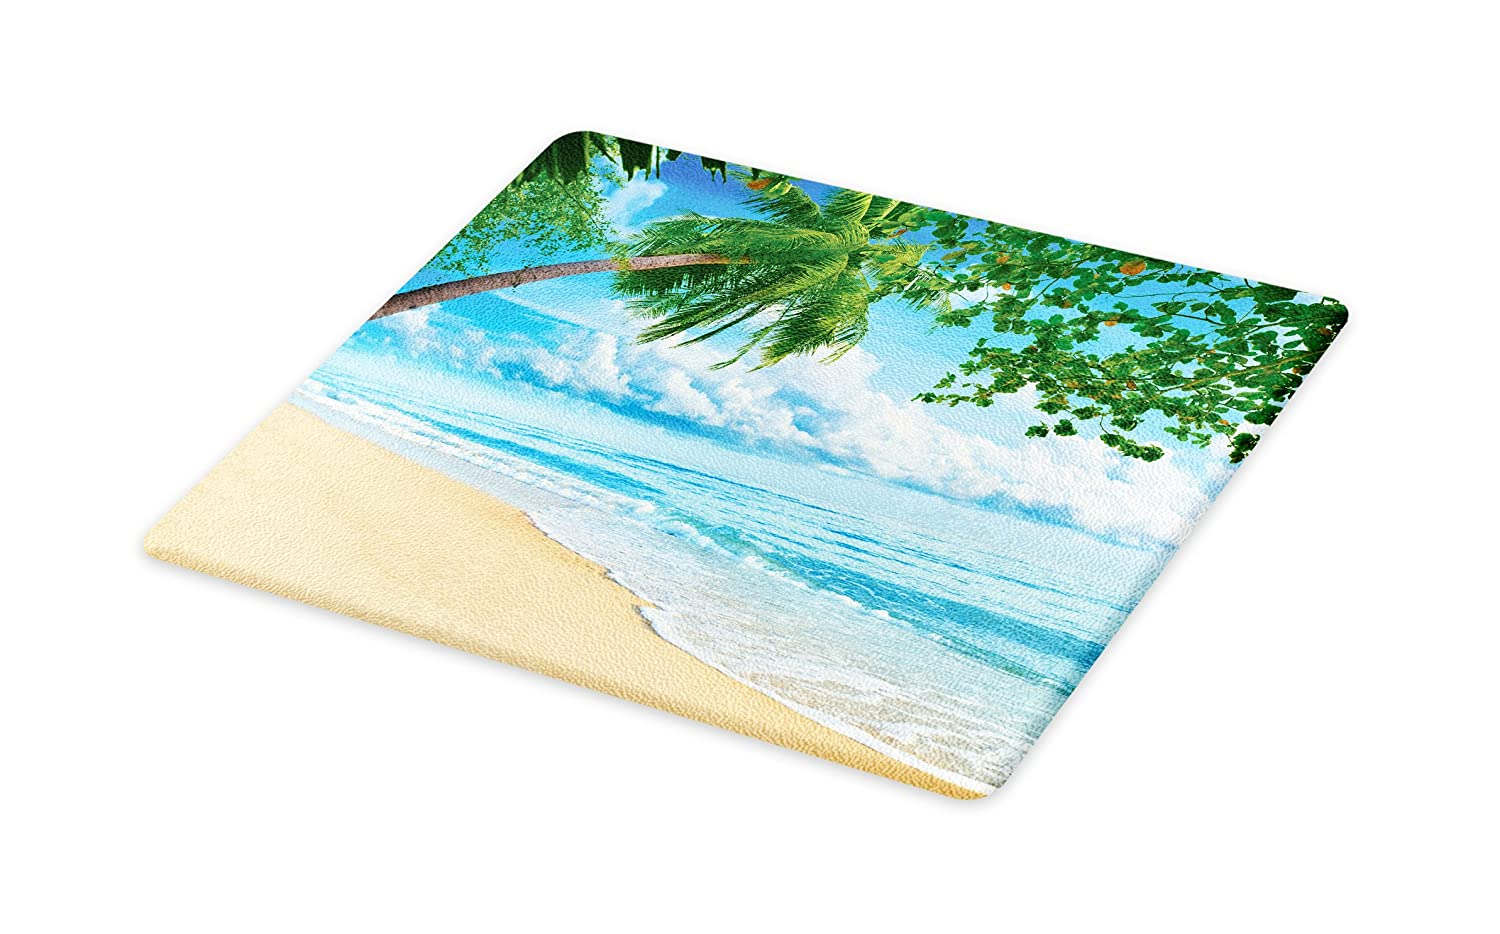 Sandy Tropical Beach in Summertime Sunny Day Seacoast Seascape Horizon Large Size Sky Blue Green Ivory Decorative Tempered Glass Cutting and Serving Board Lunarable Tropical Cutting Board